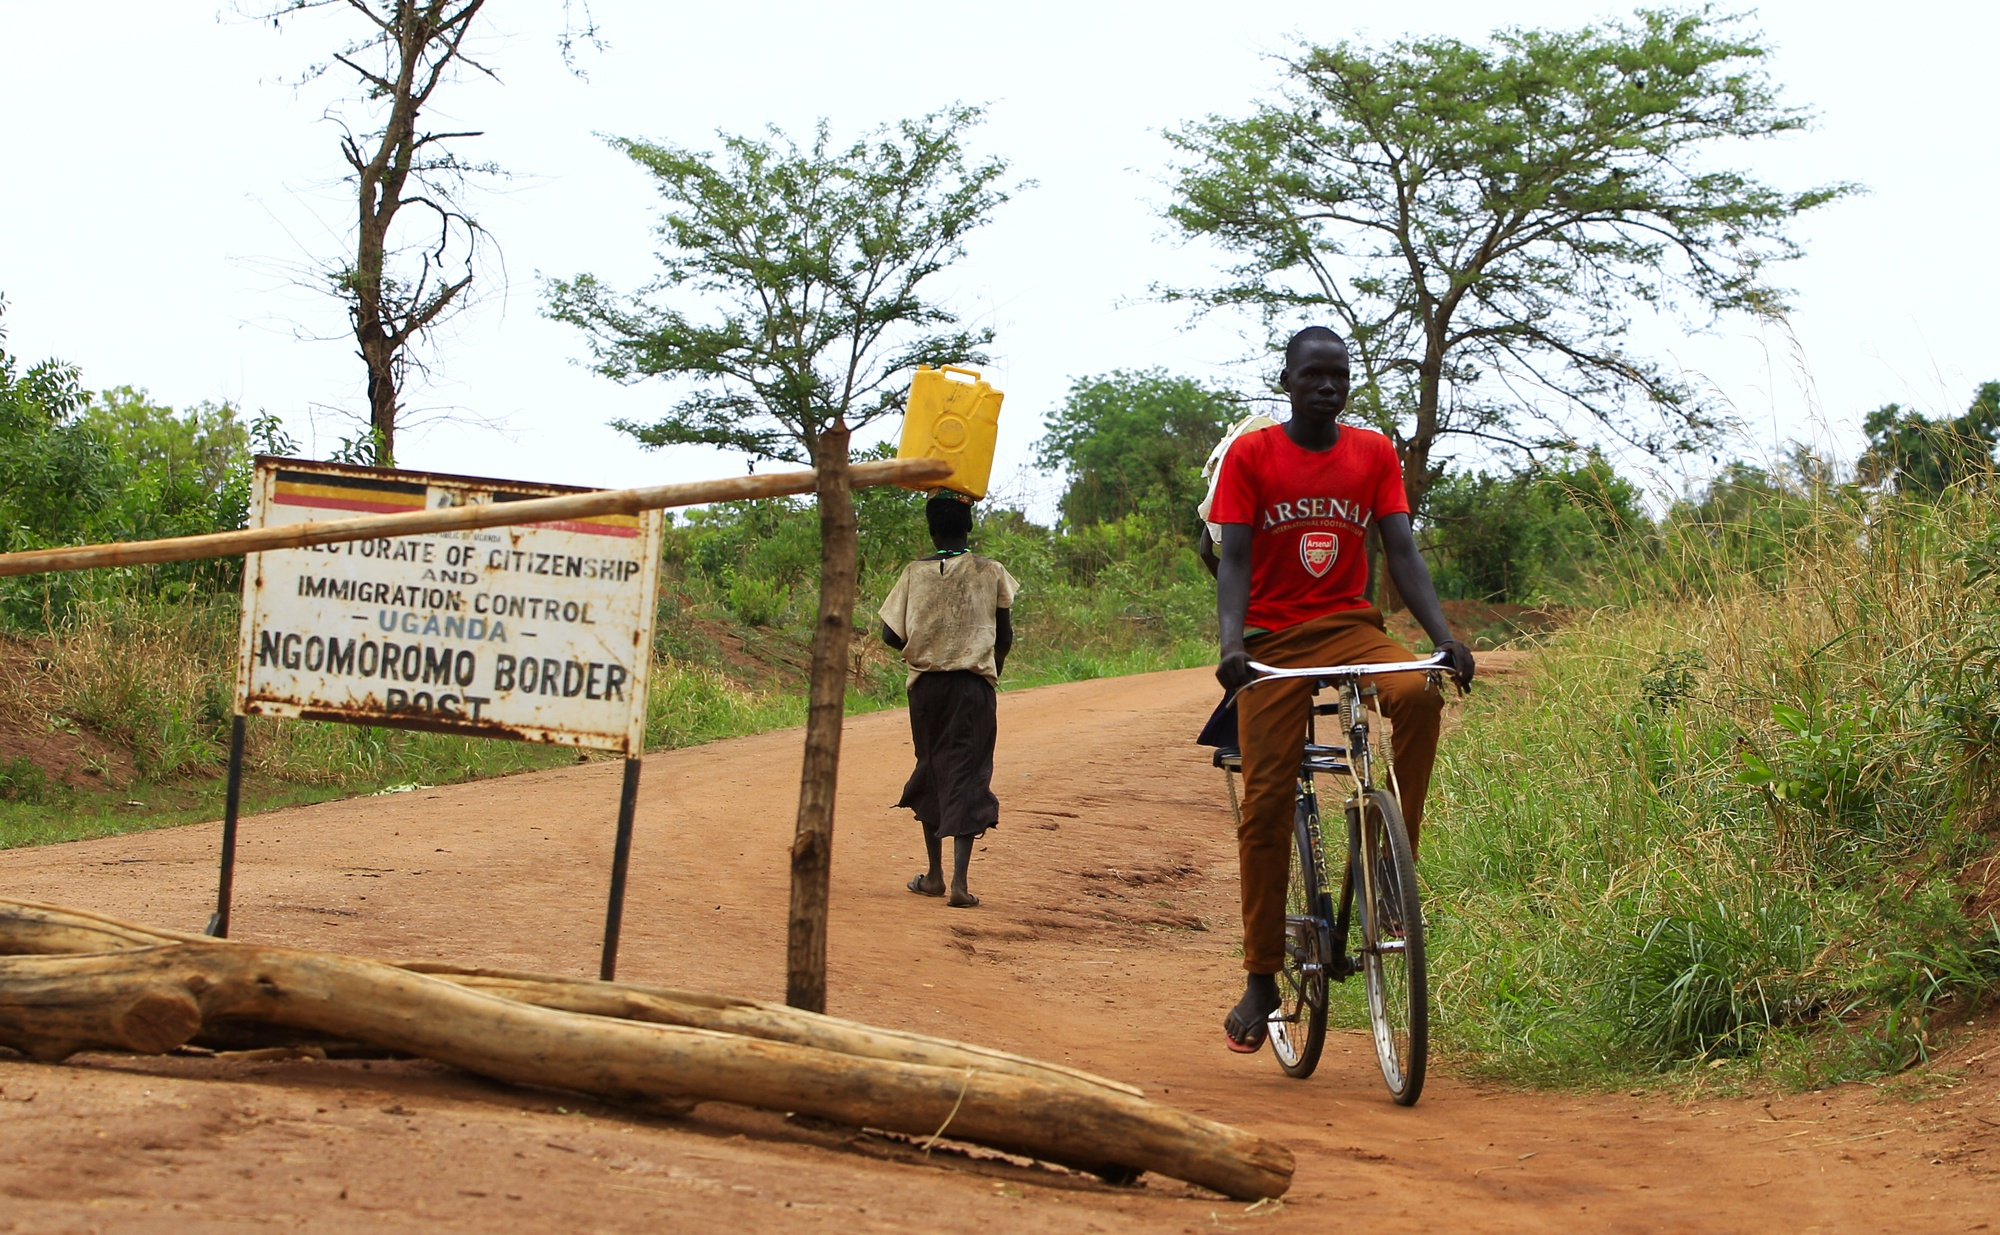 A man rides a bike past a sign indicating the border